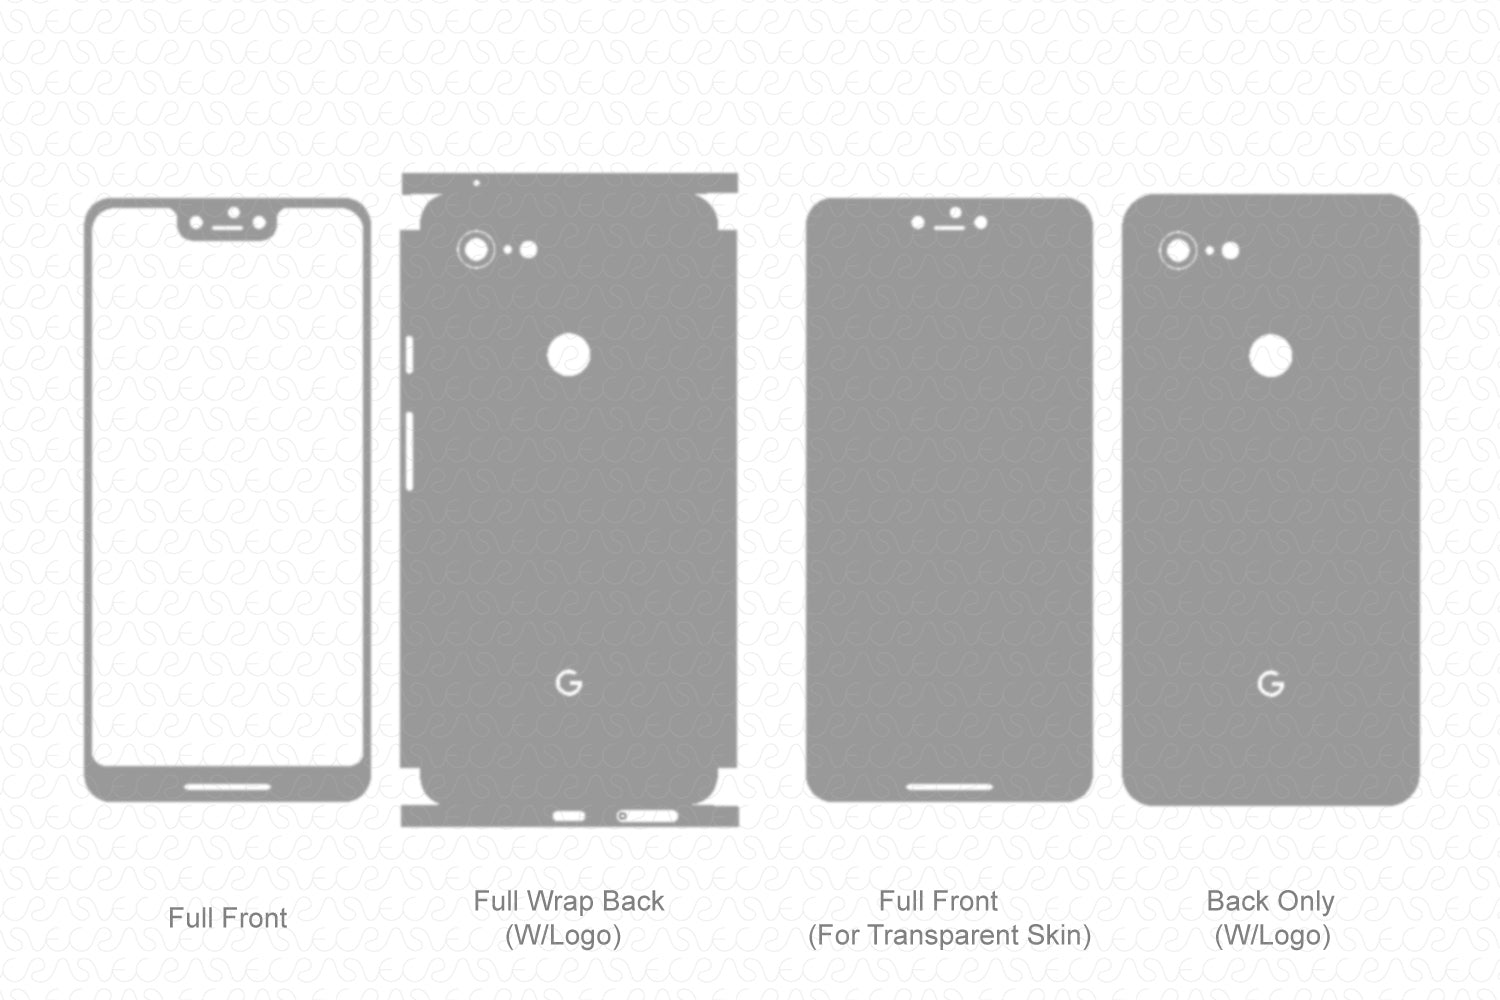 Pixel 3 XL (2018) Skin Template Vector